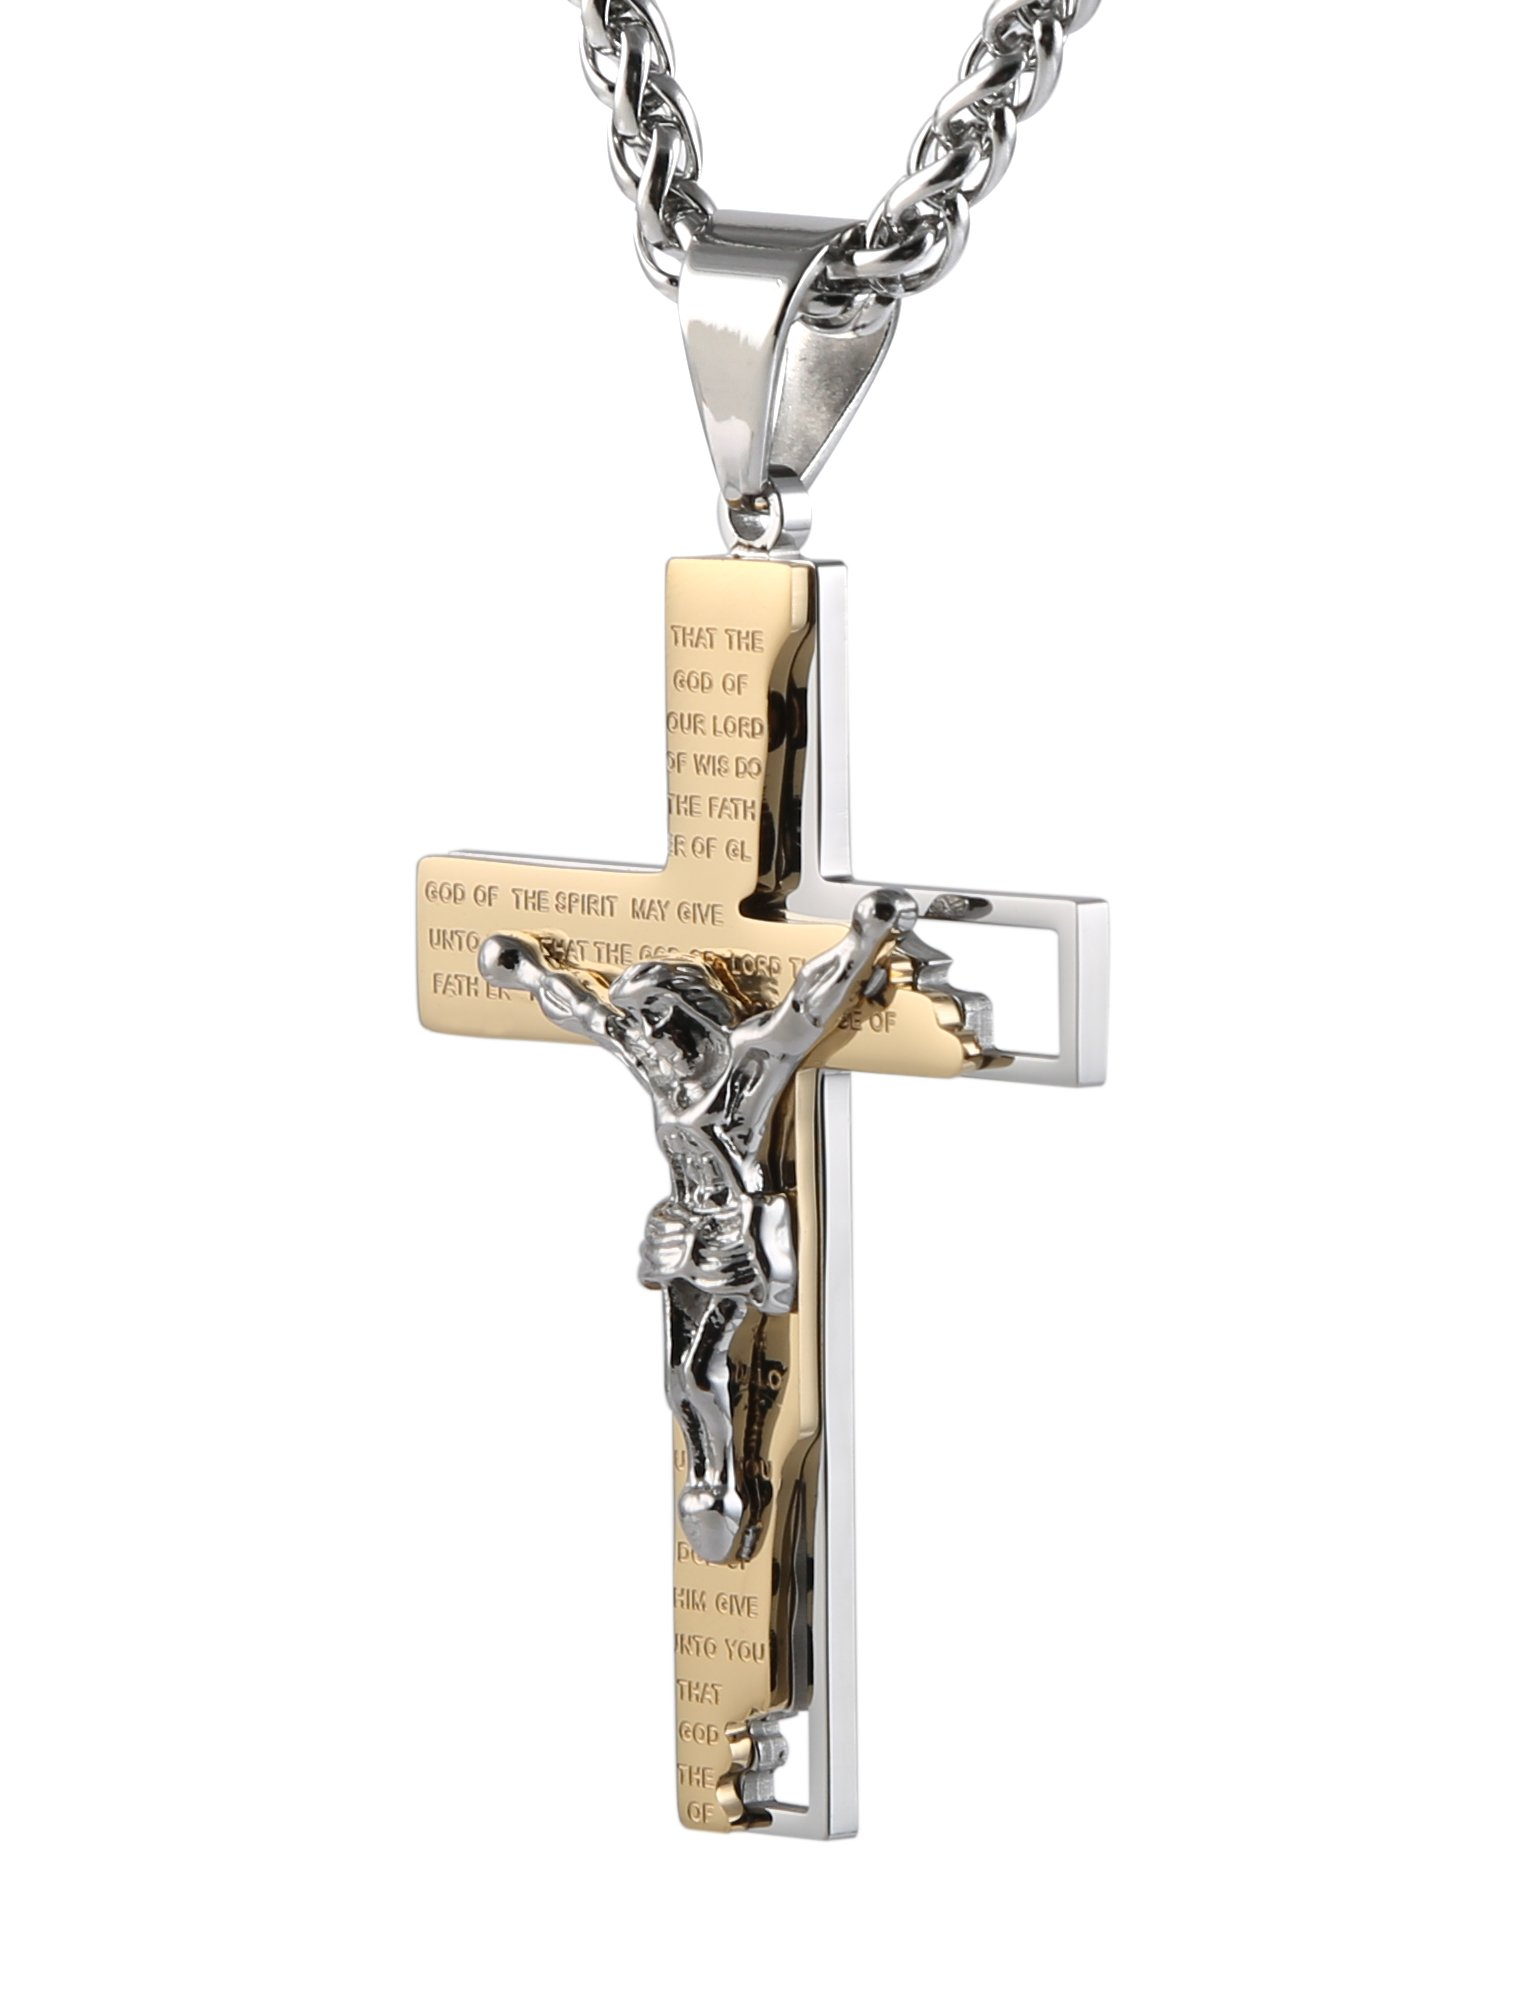 HZMAN Men's Stainless Steel Cross Crucifix Bible Prayer Pendant Necklace 24'' Chain Gold